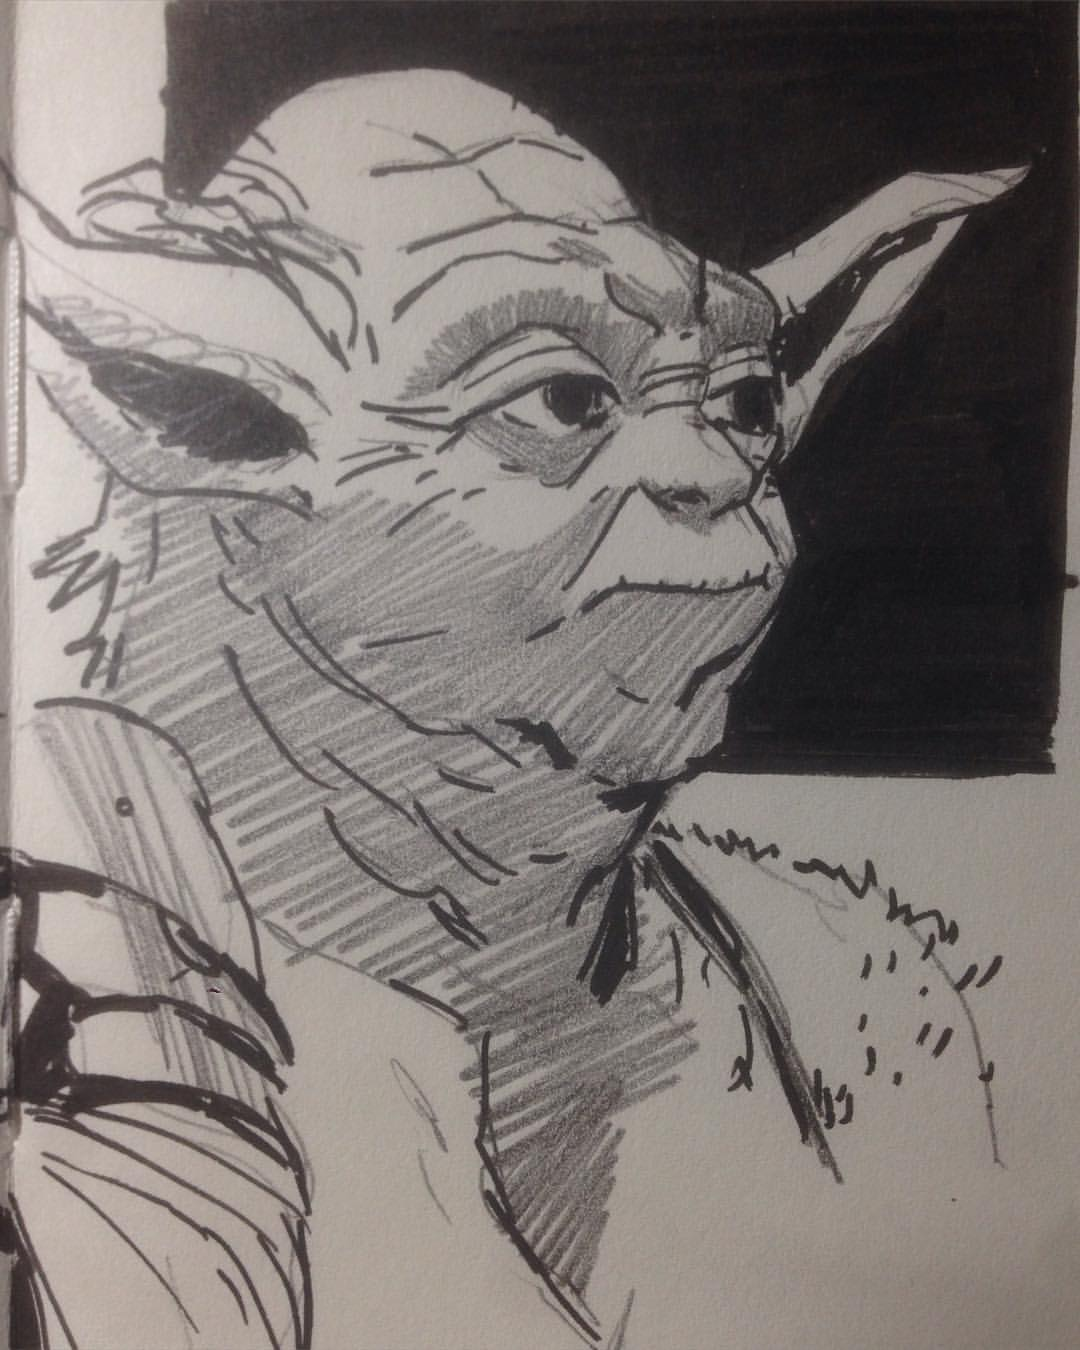 #Maythe4thbewithyou #MaySketchday 04 still enjoying the inks. Last pages of the moleskin and I didn't order new ones in time. So I'll have to put the moleskin sketches on hiatus. #artistproblems